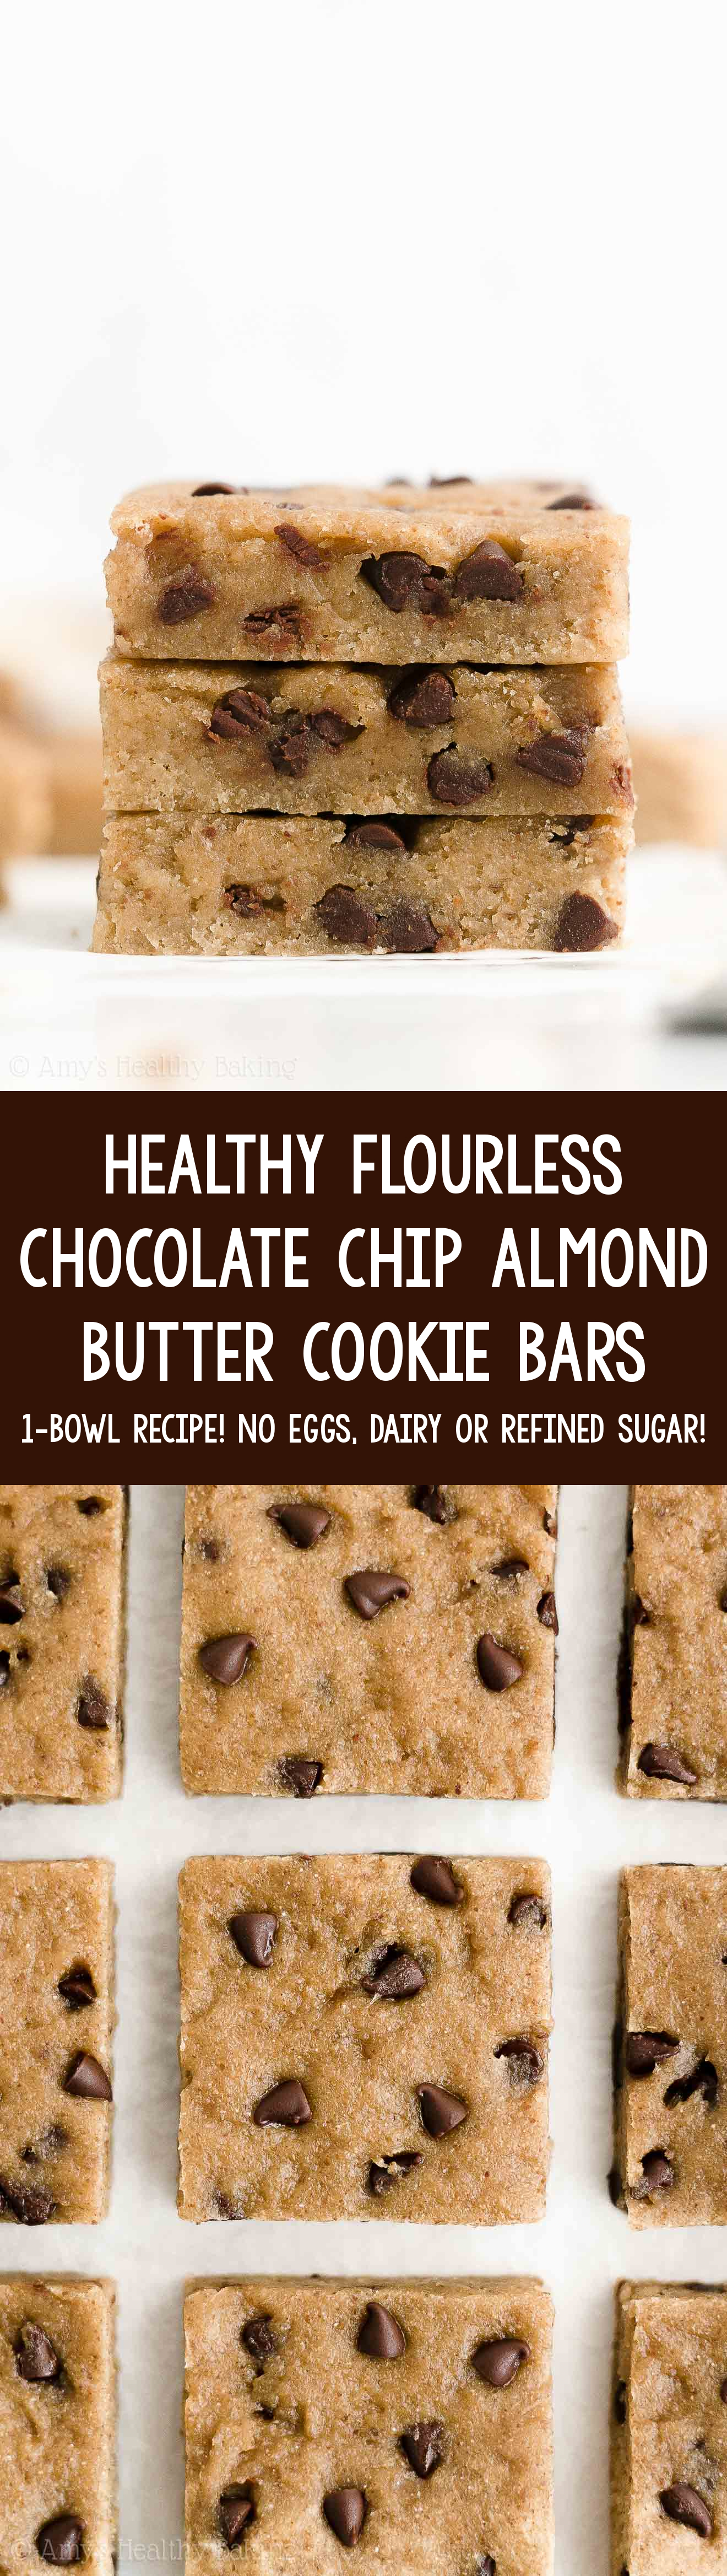 Easy Healthy Gluten Free Vegan Sugar Free Chocolate Chip Almond Butter Cookie Bars